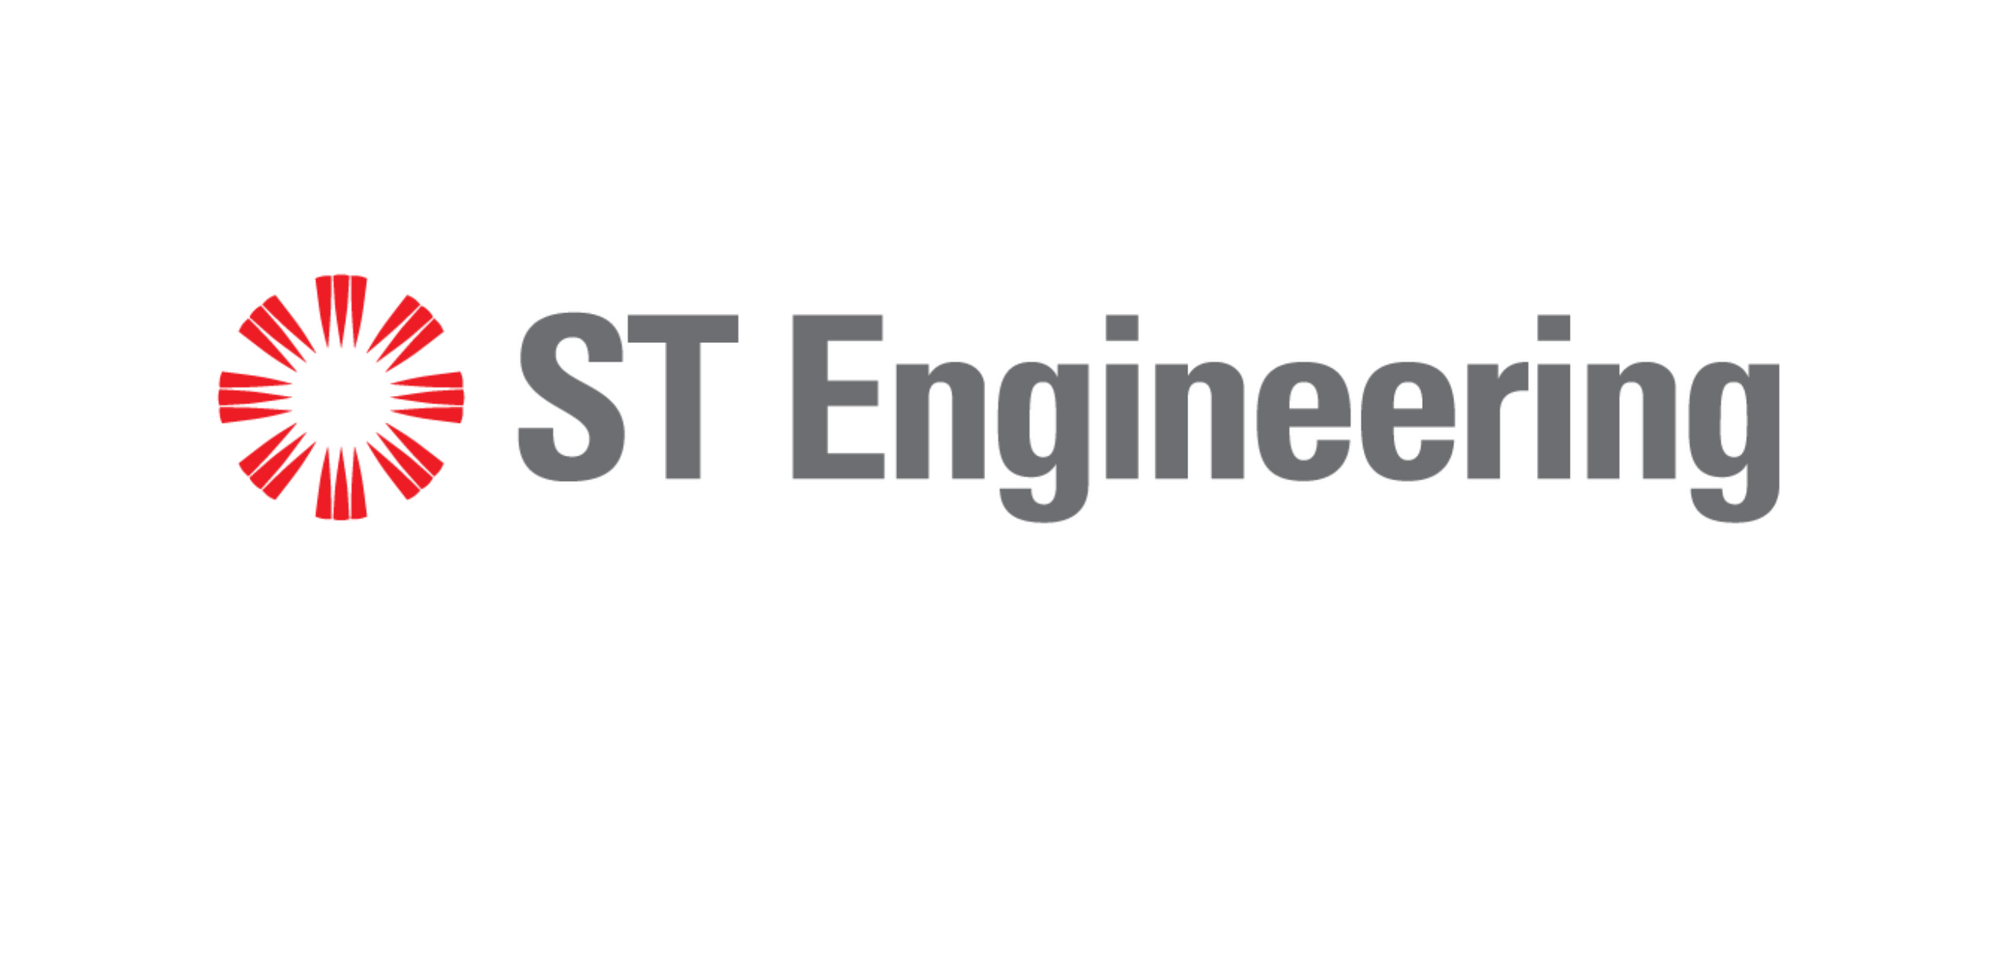 ST Engineering Reorganises for Global Growth and Success